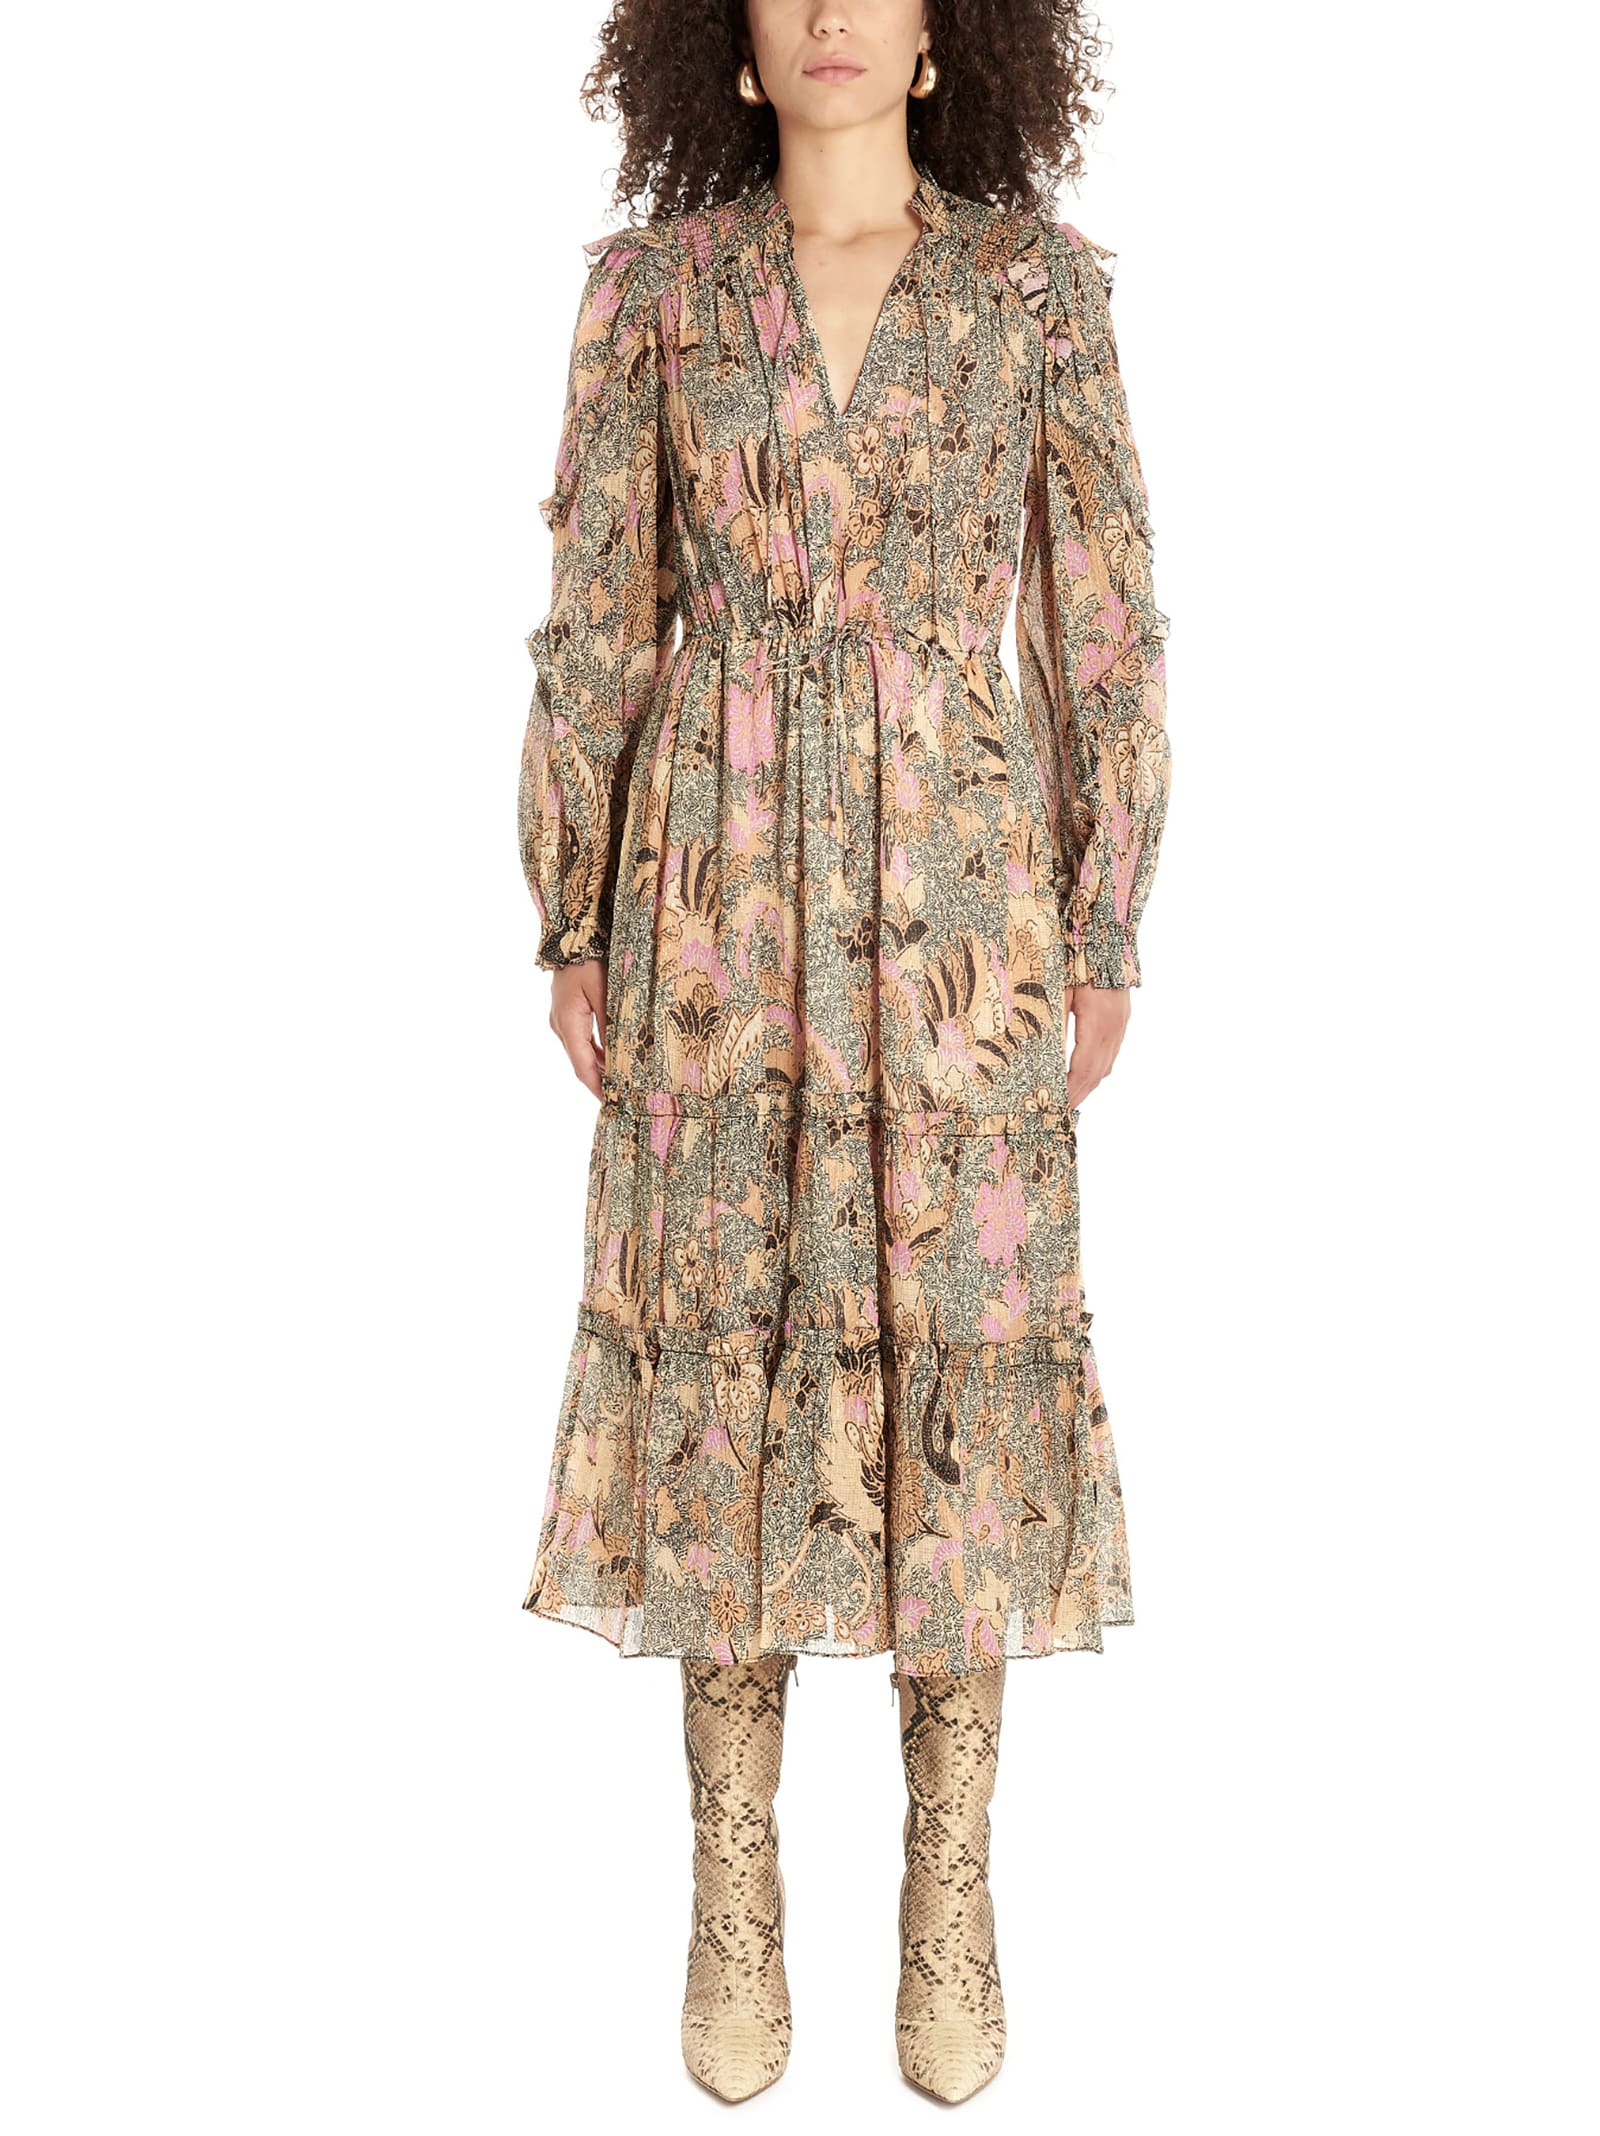 Ulla Johnson paola Dress